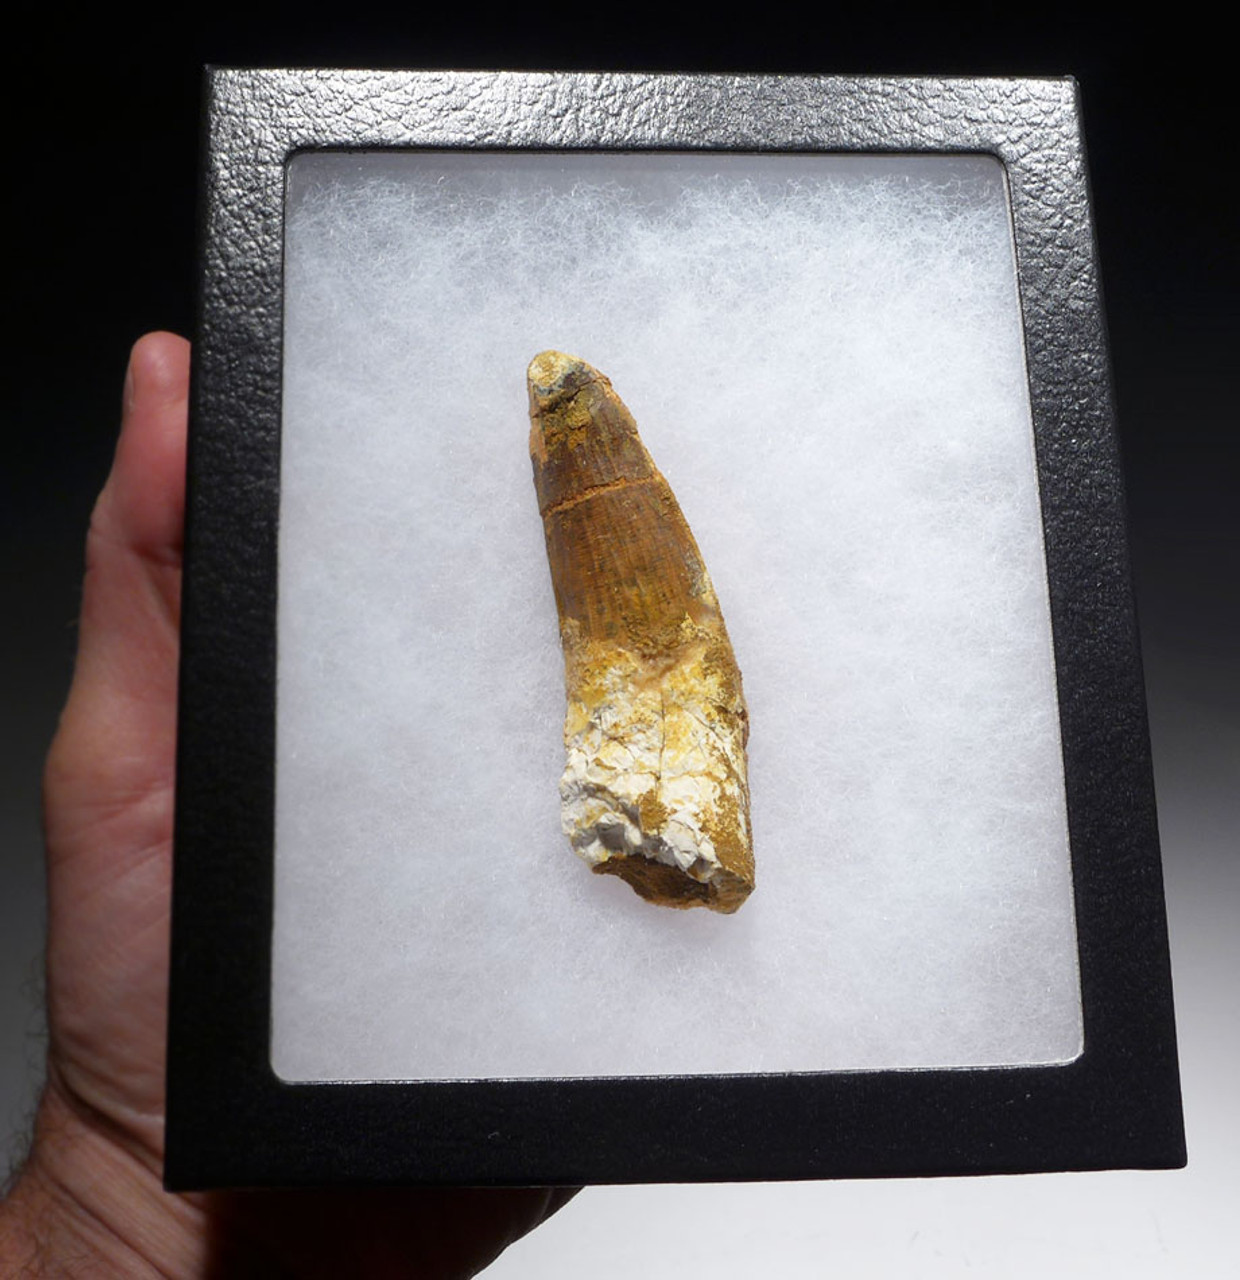 LARGE INEXPENSIVE 3.25 INCH SPINOSAURUS DINOSAUR FOSSIL TOOTH *DT5-440